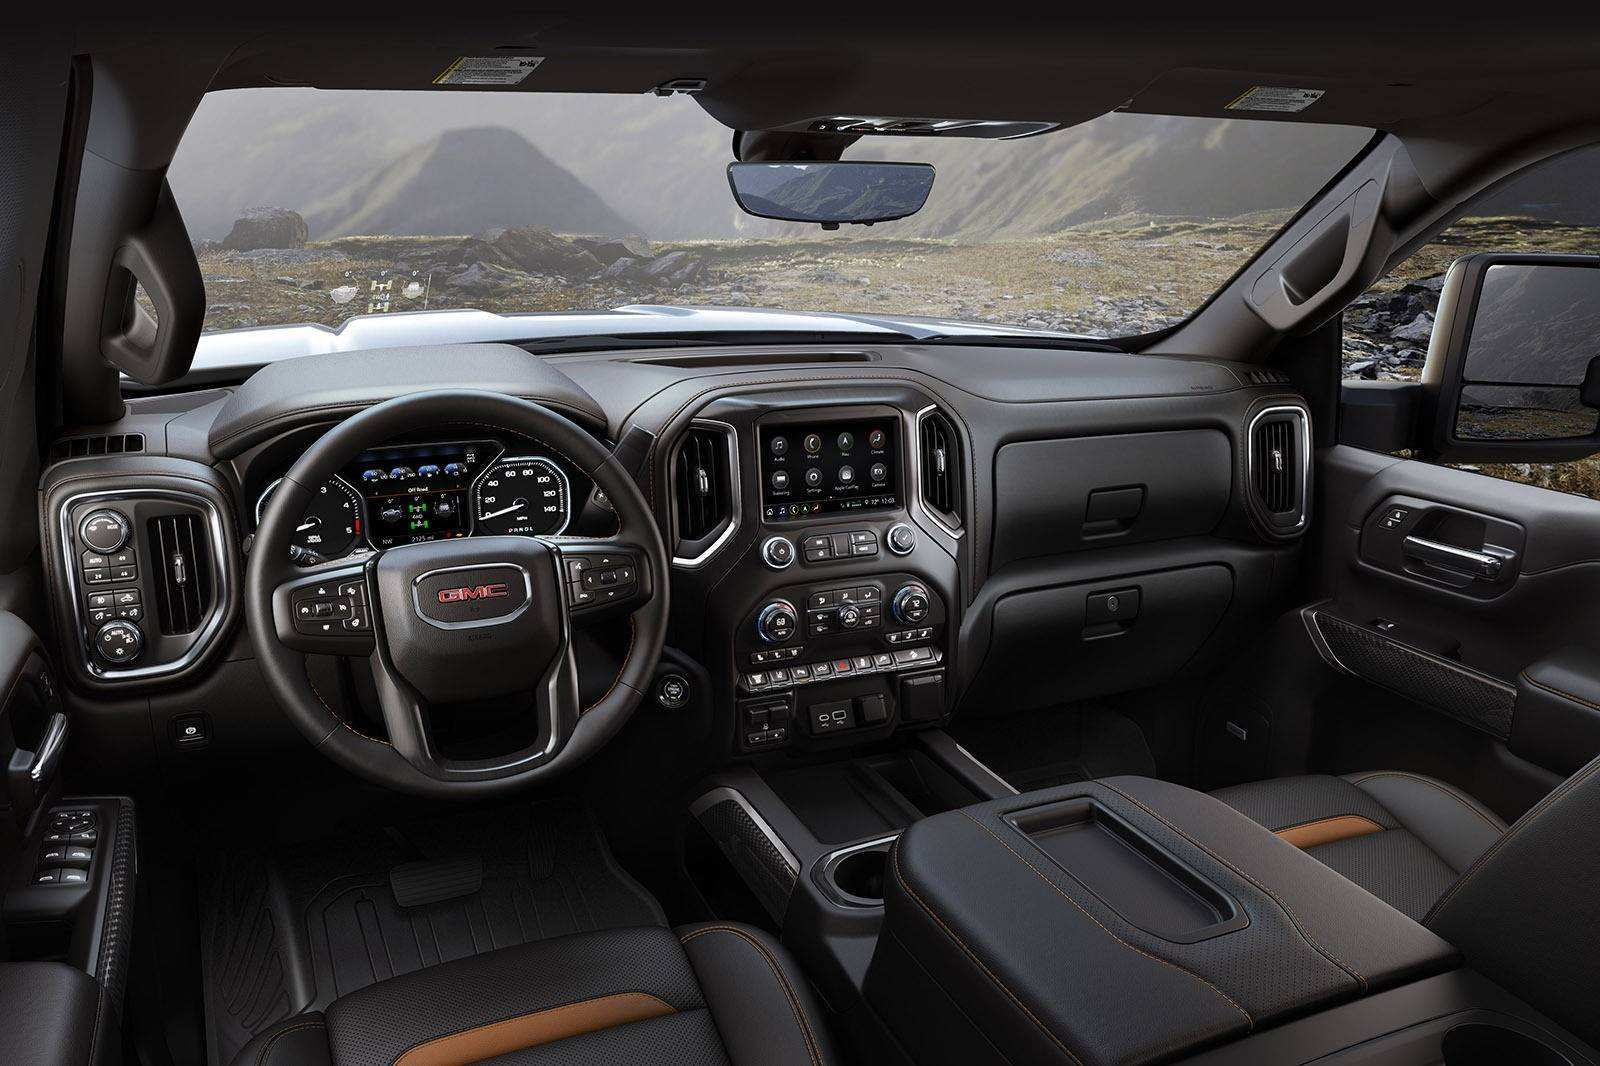 35 New 2020 Gmc Sierra Hd Interior Review with 2020 Gmc Sierra Hd Interior